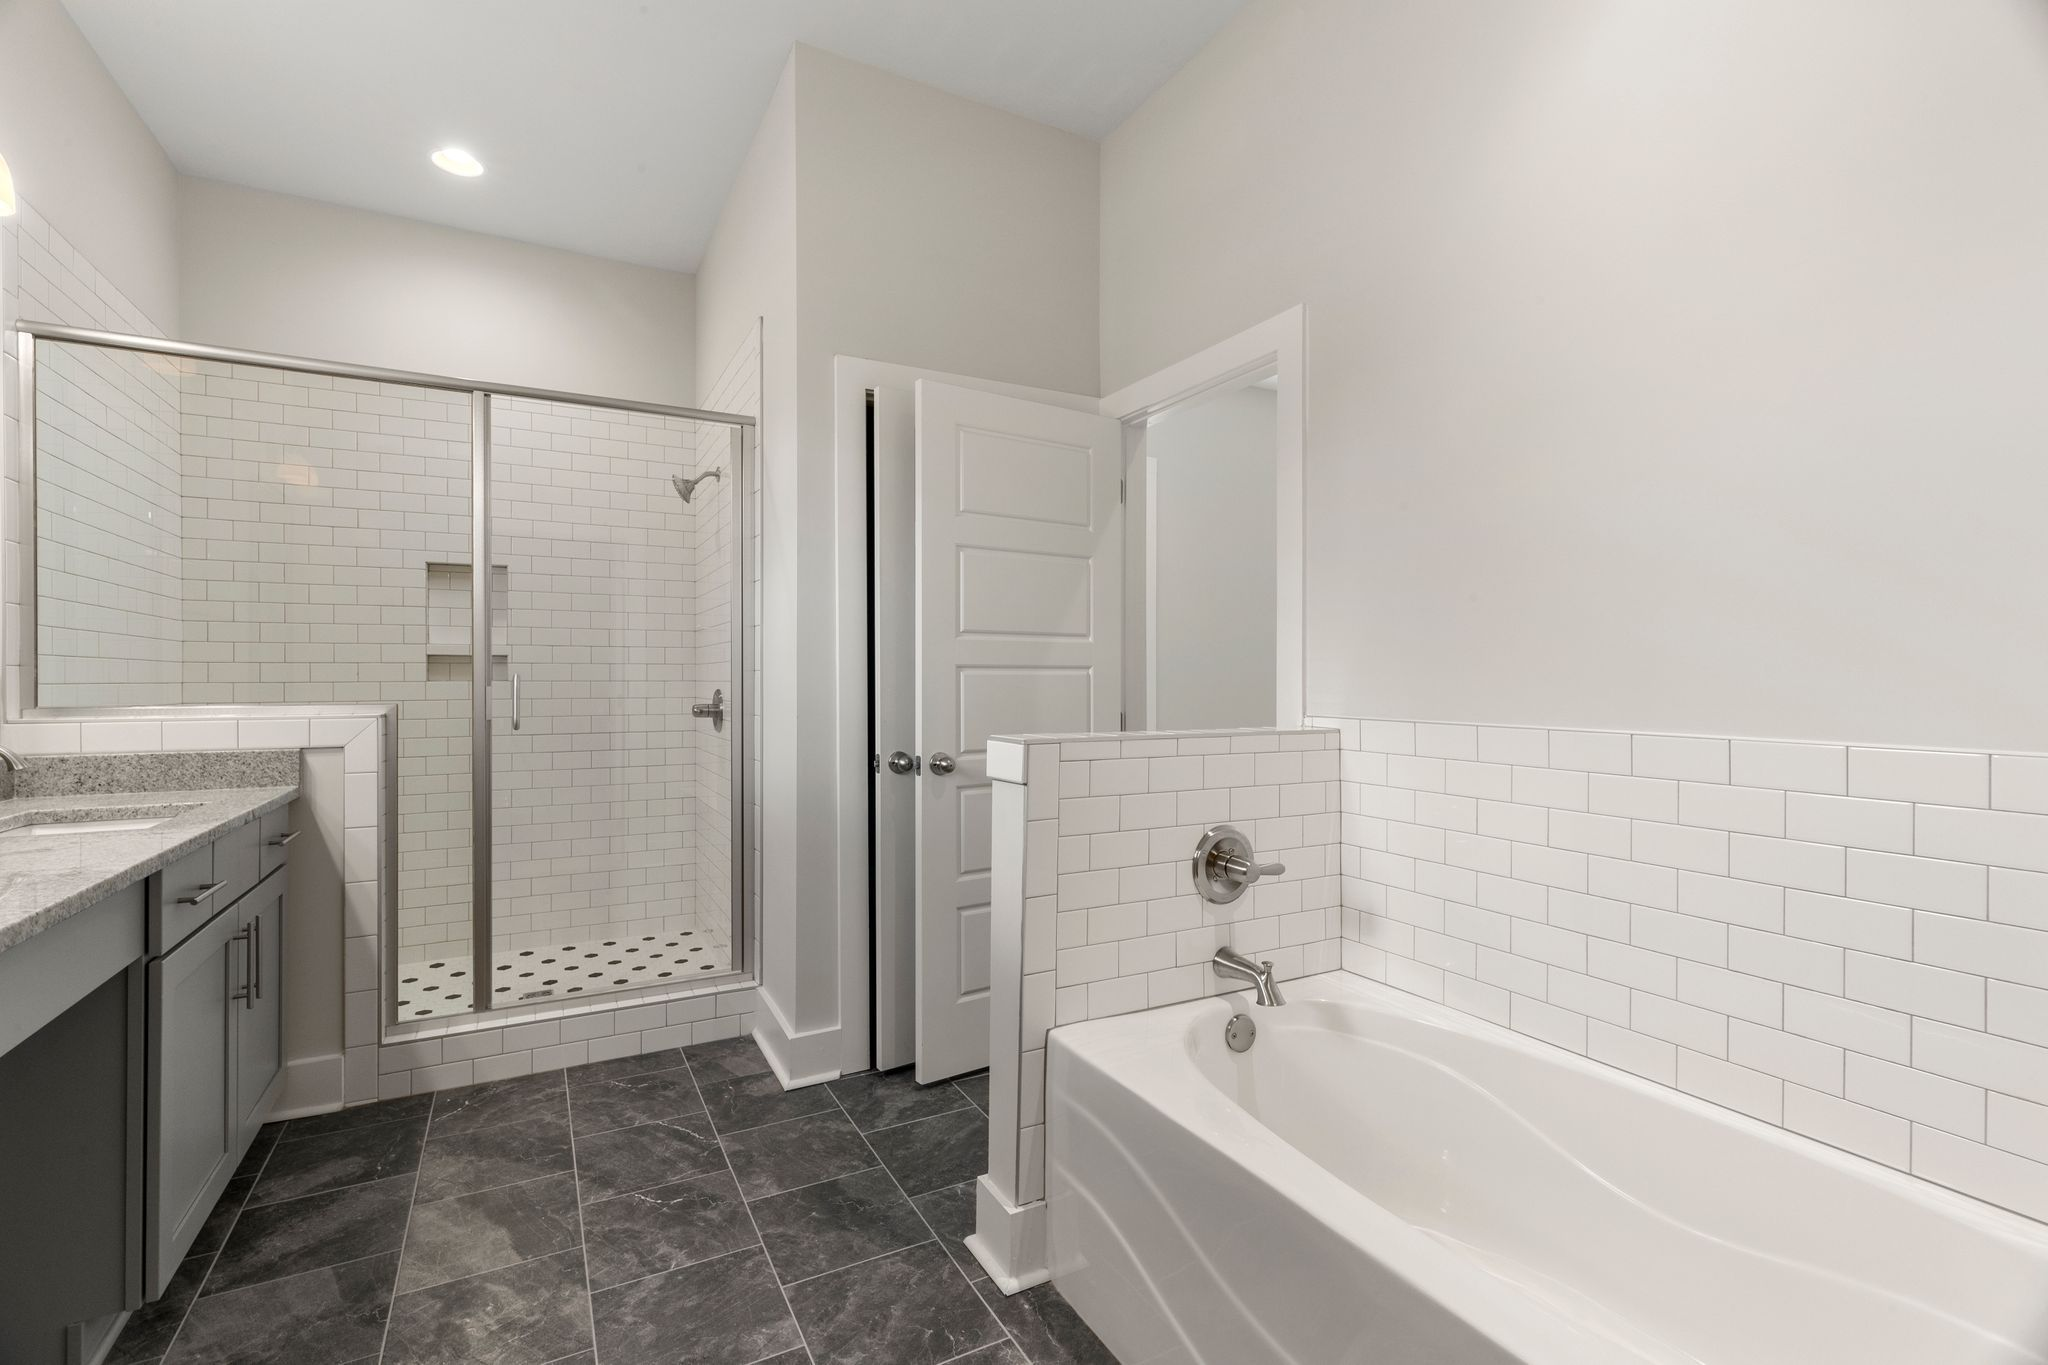 Bathroom featured in The Fullerton By Holland Homes in Birmingham, AL